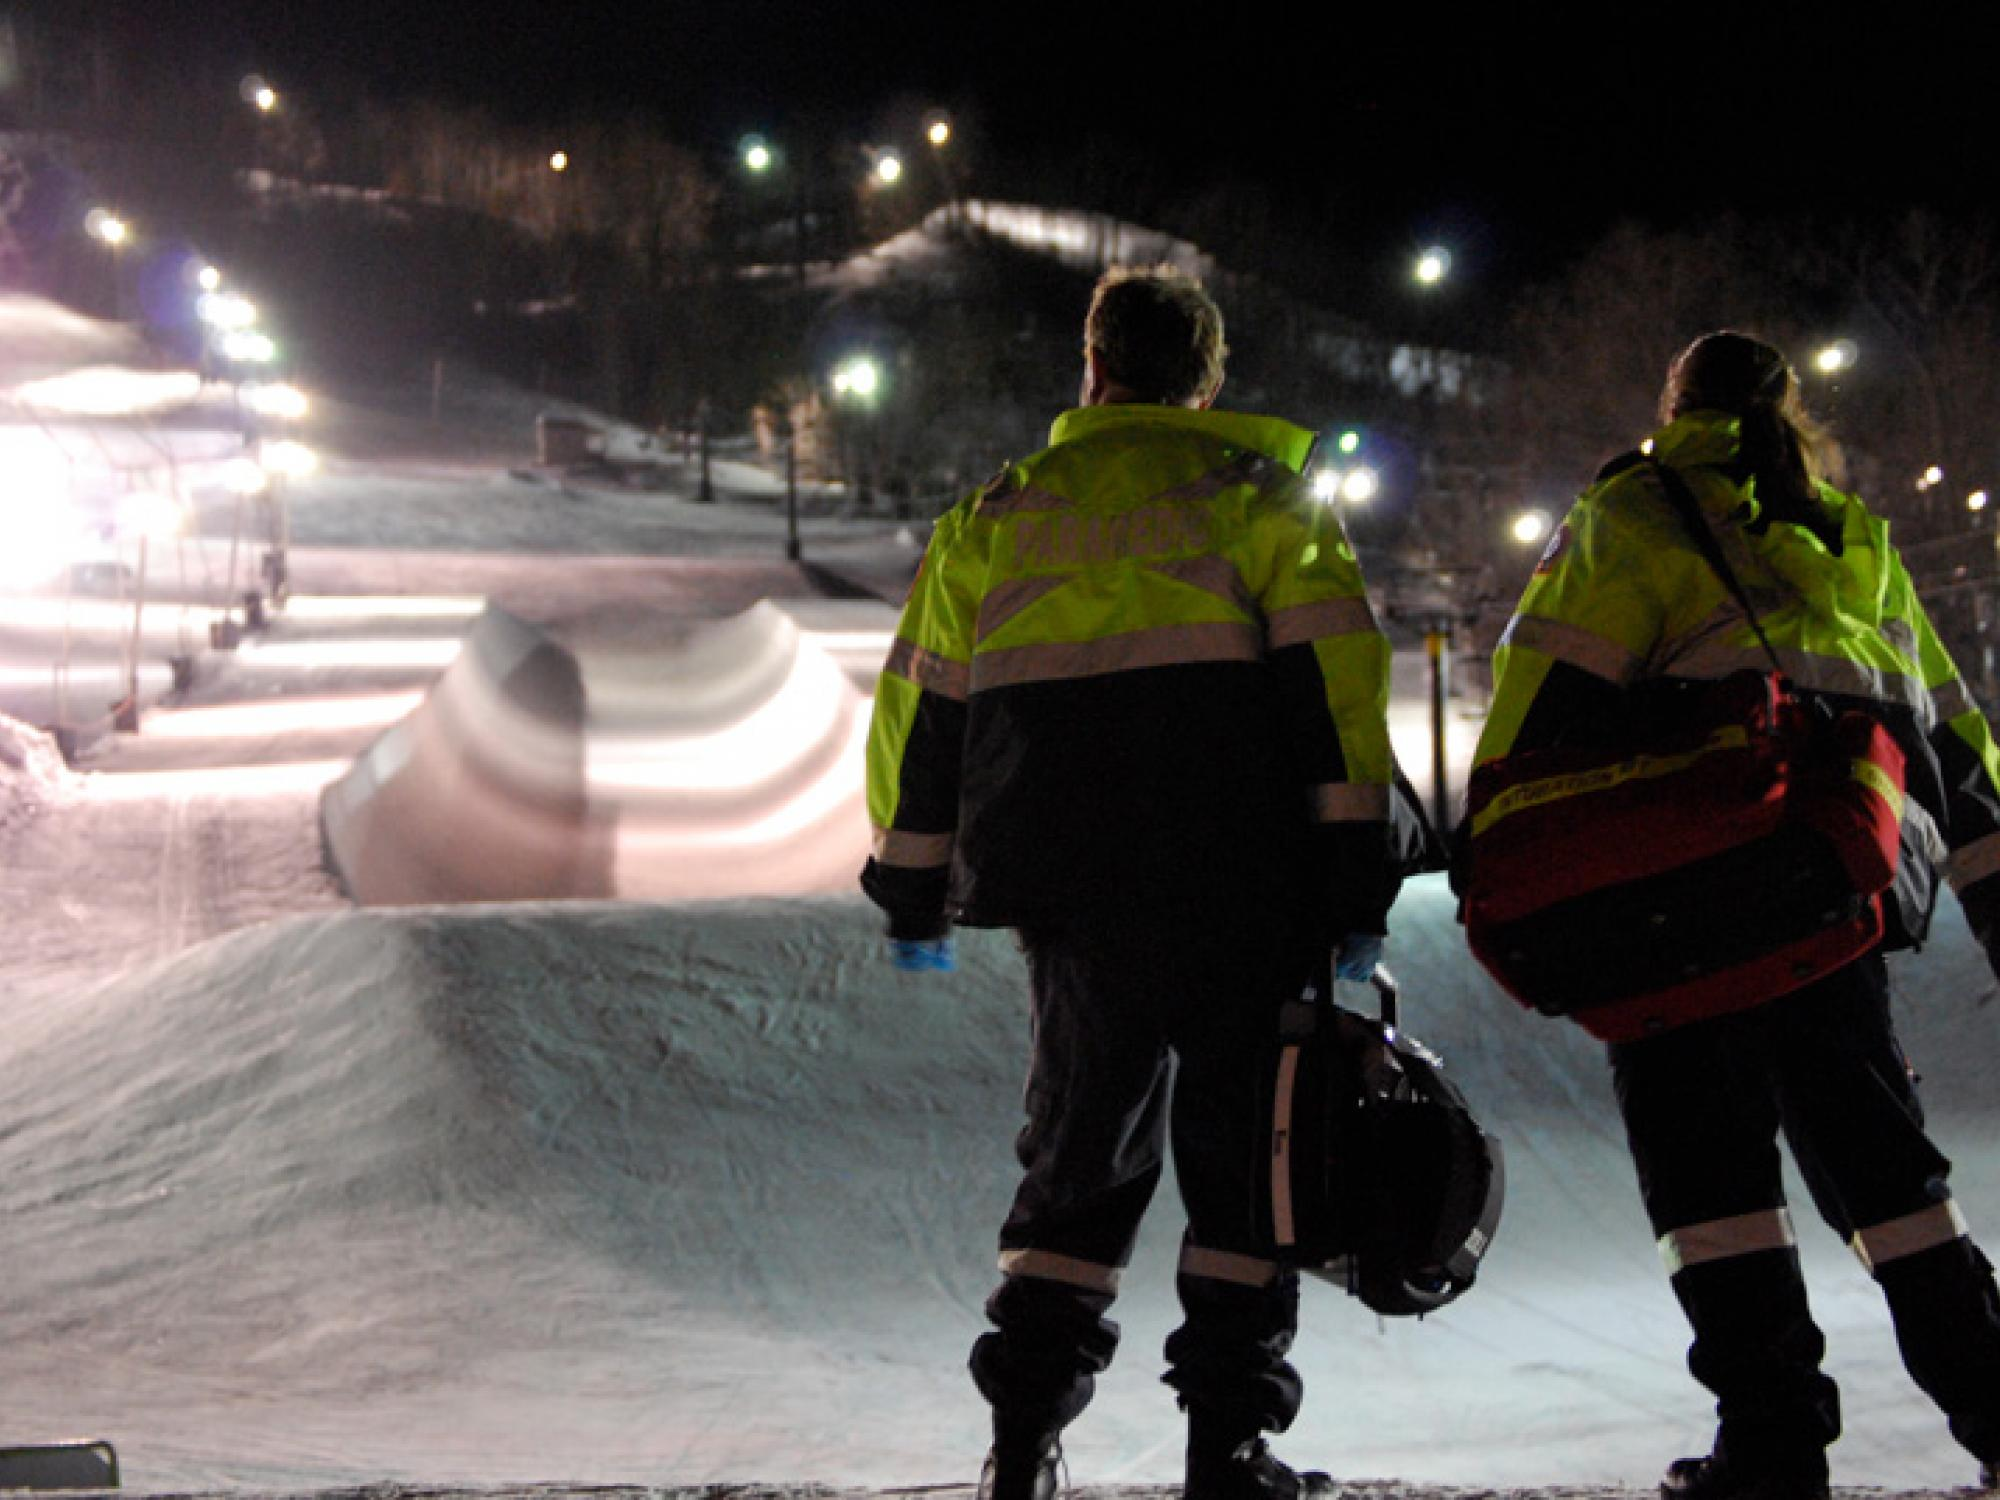 Two paramedics stand at the base of blue mountain as it is lit up at night.